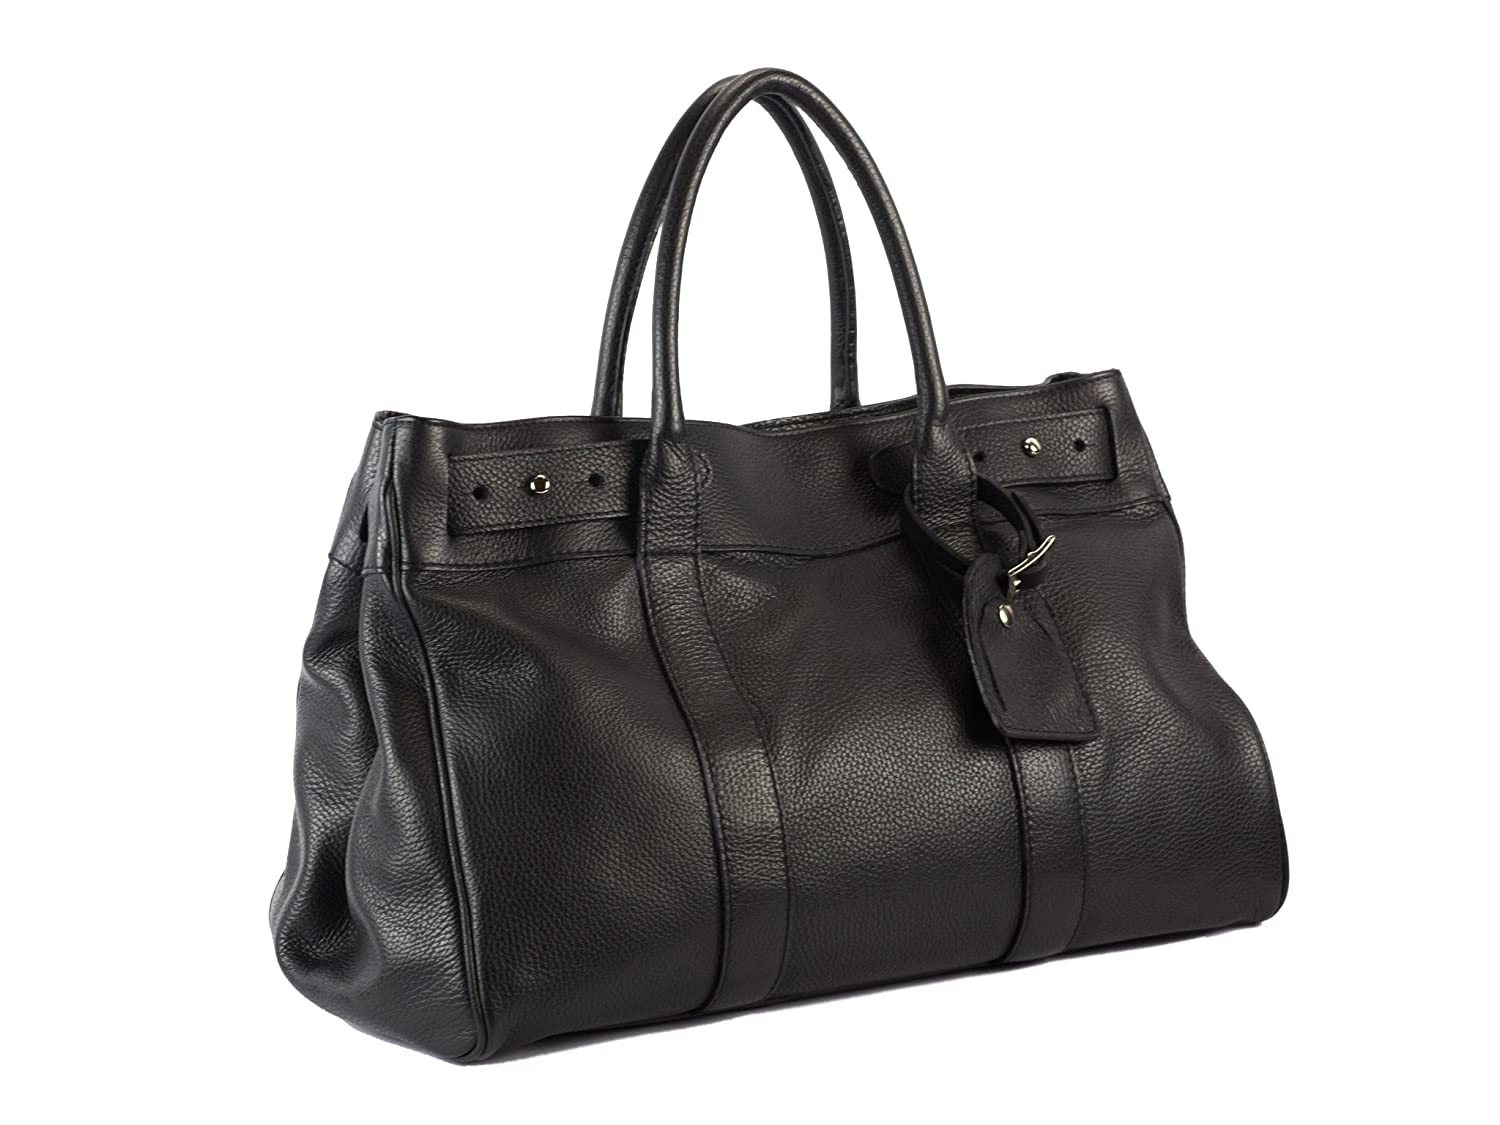 Claudia Firenze Pebbled Leather Satchel Tote X-Large